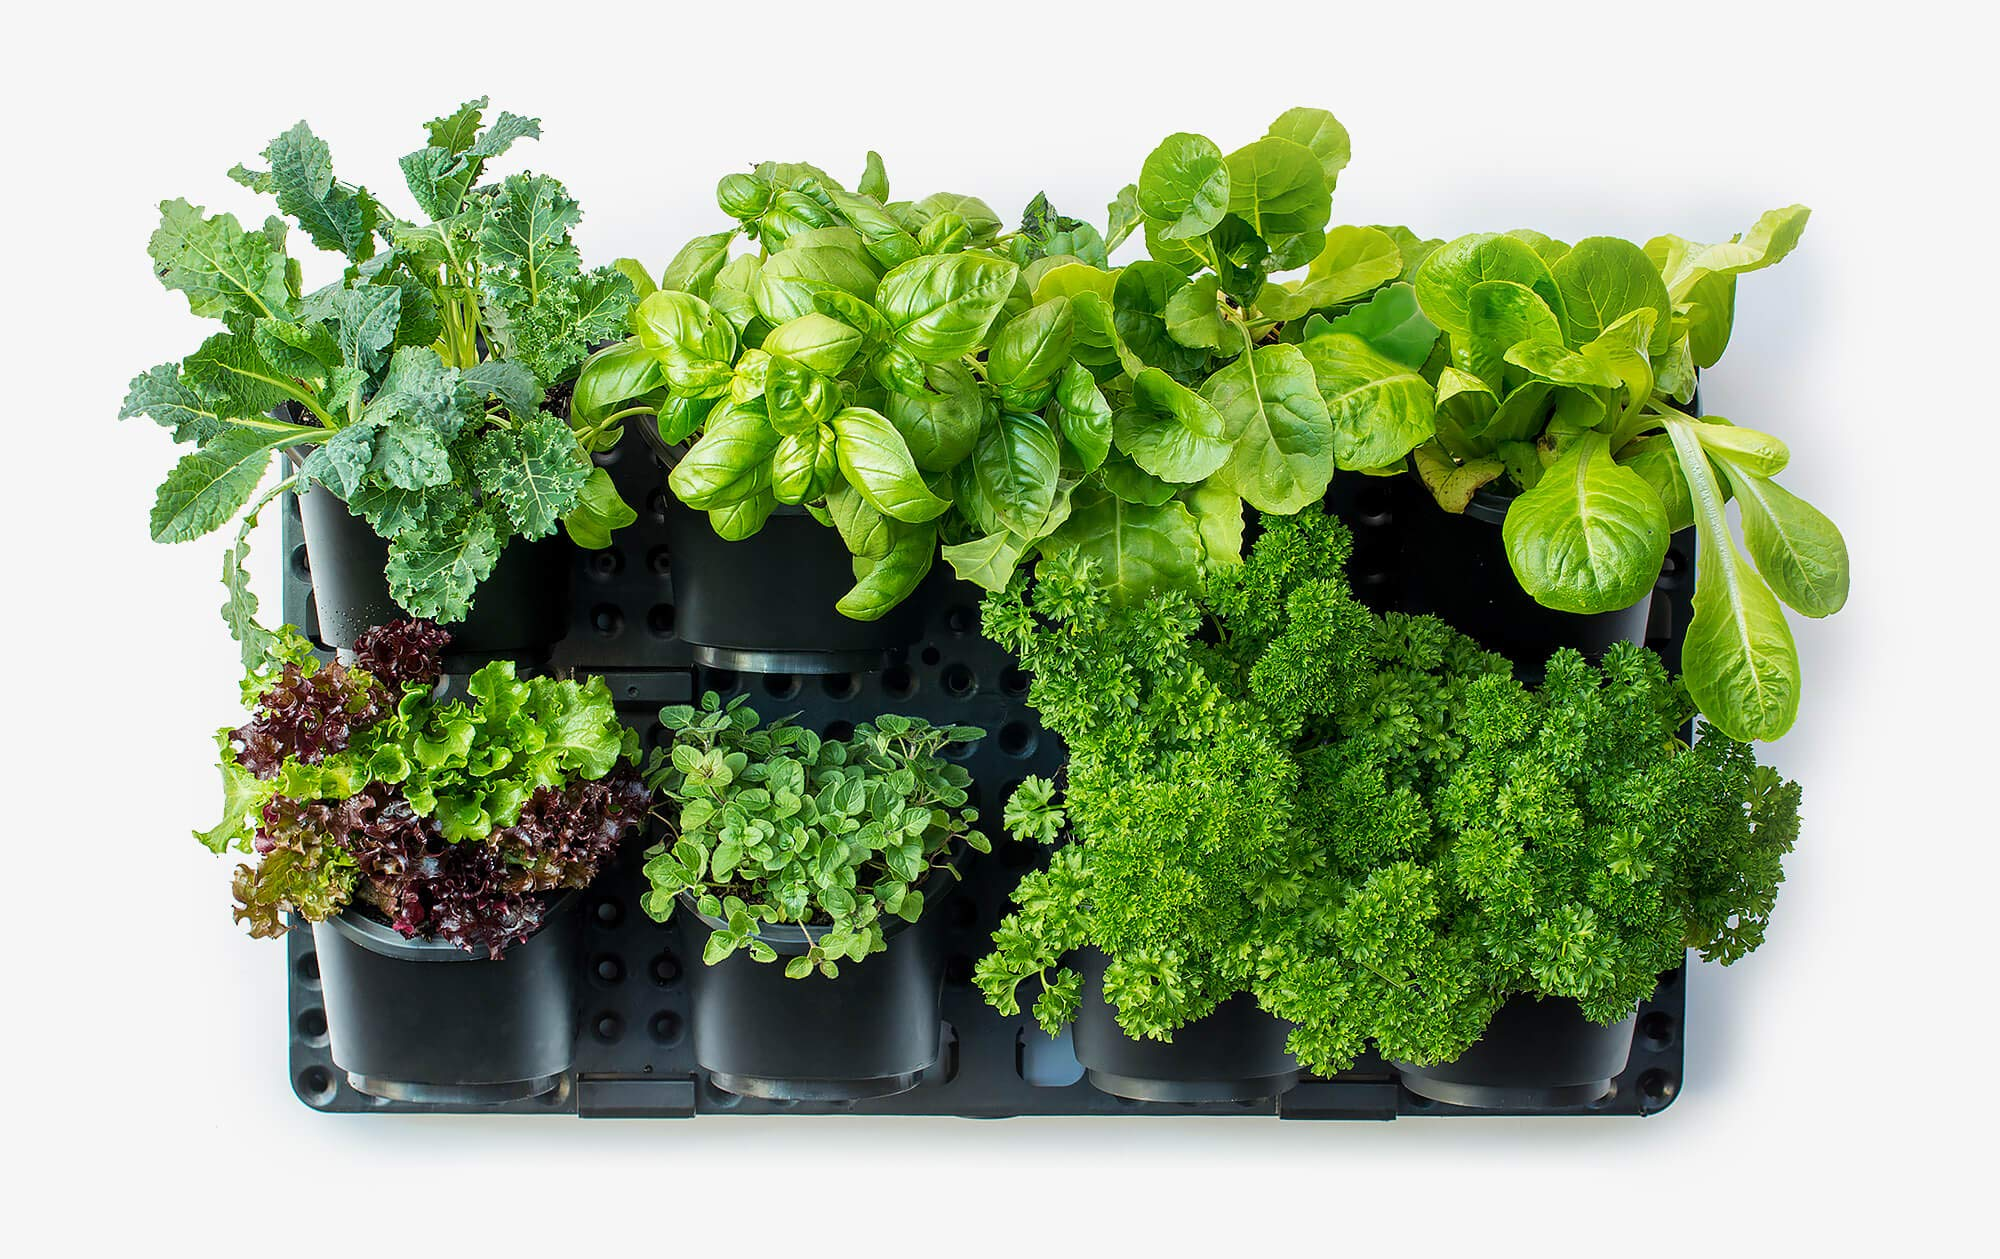 Expandable Green Wall w/Built-in Micro dripper, Single Pack